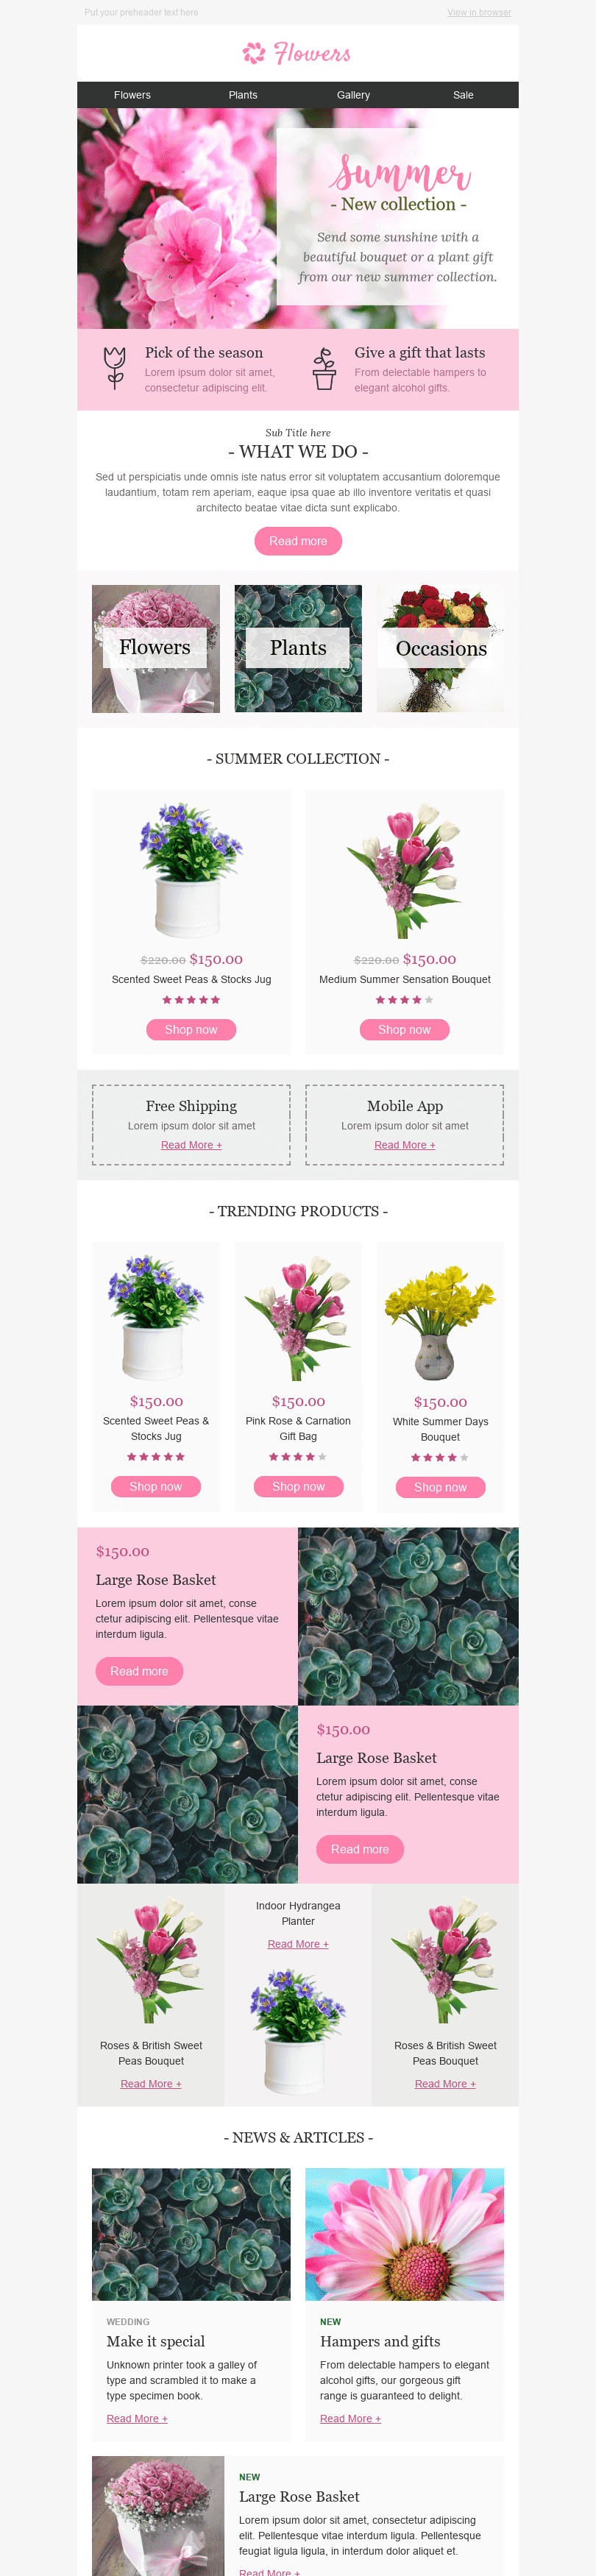 "Promo Email Template ""Special Occasion"" for Gifts & Flowers industry desktop view"